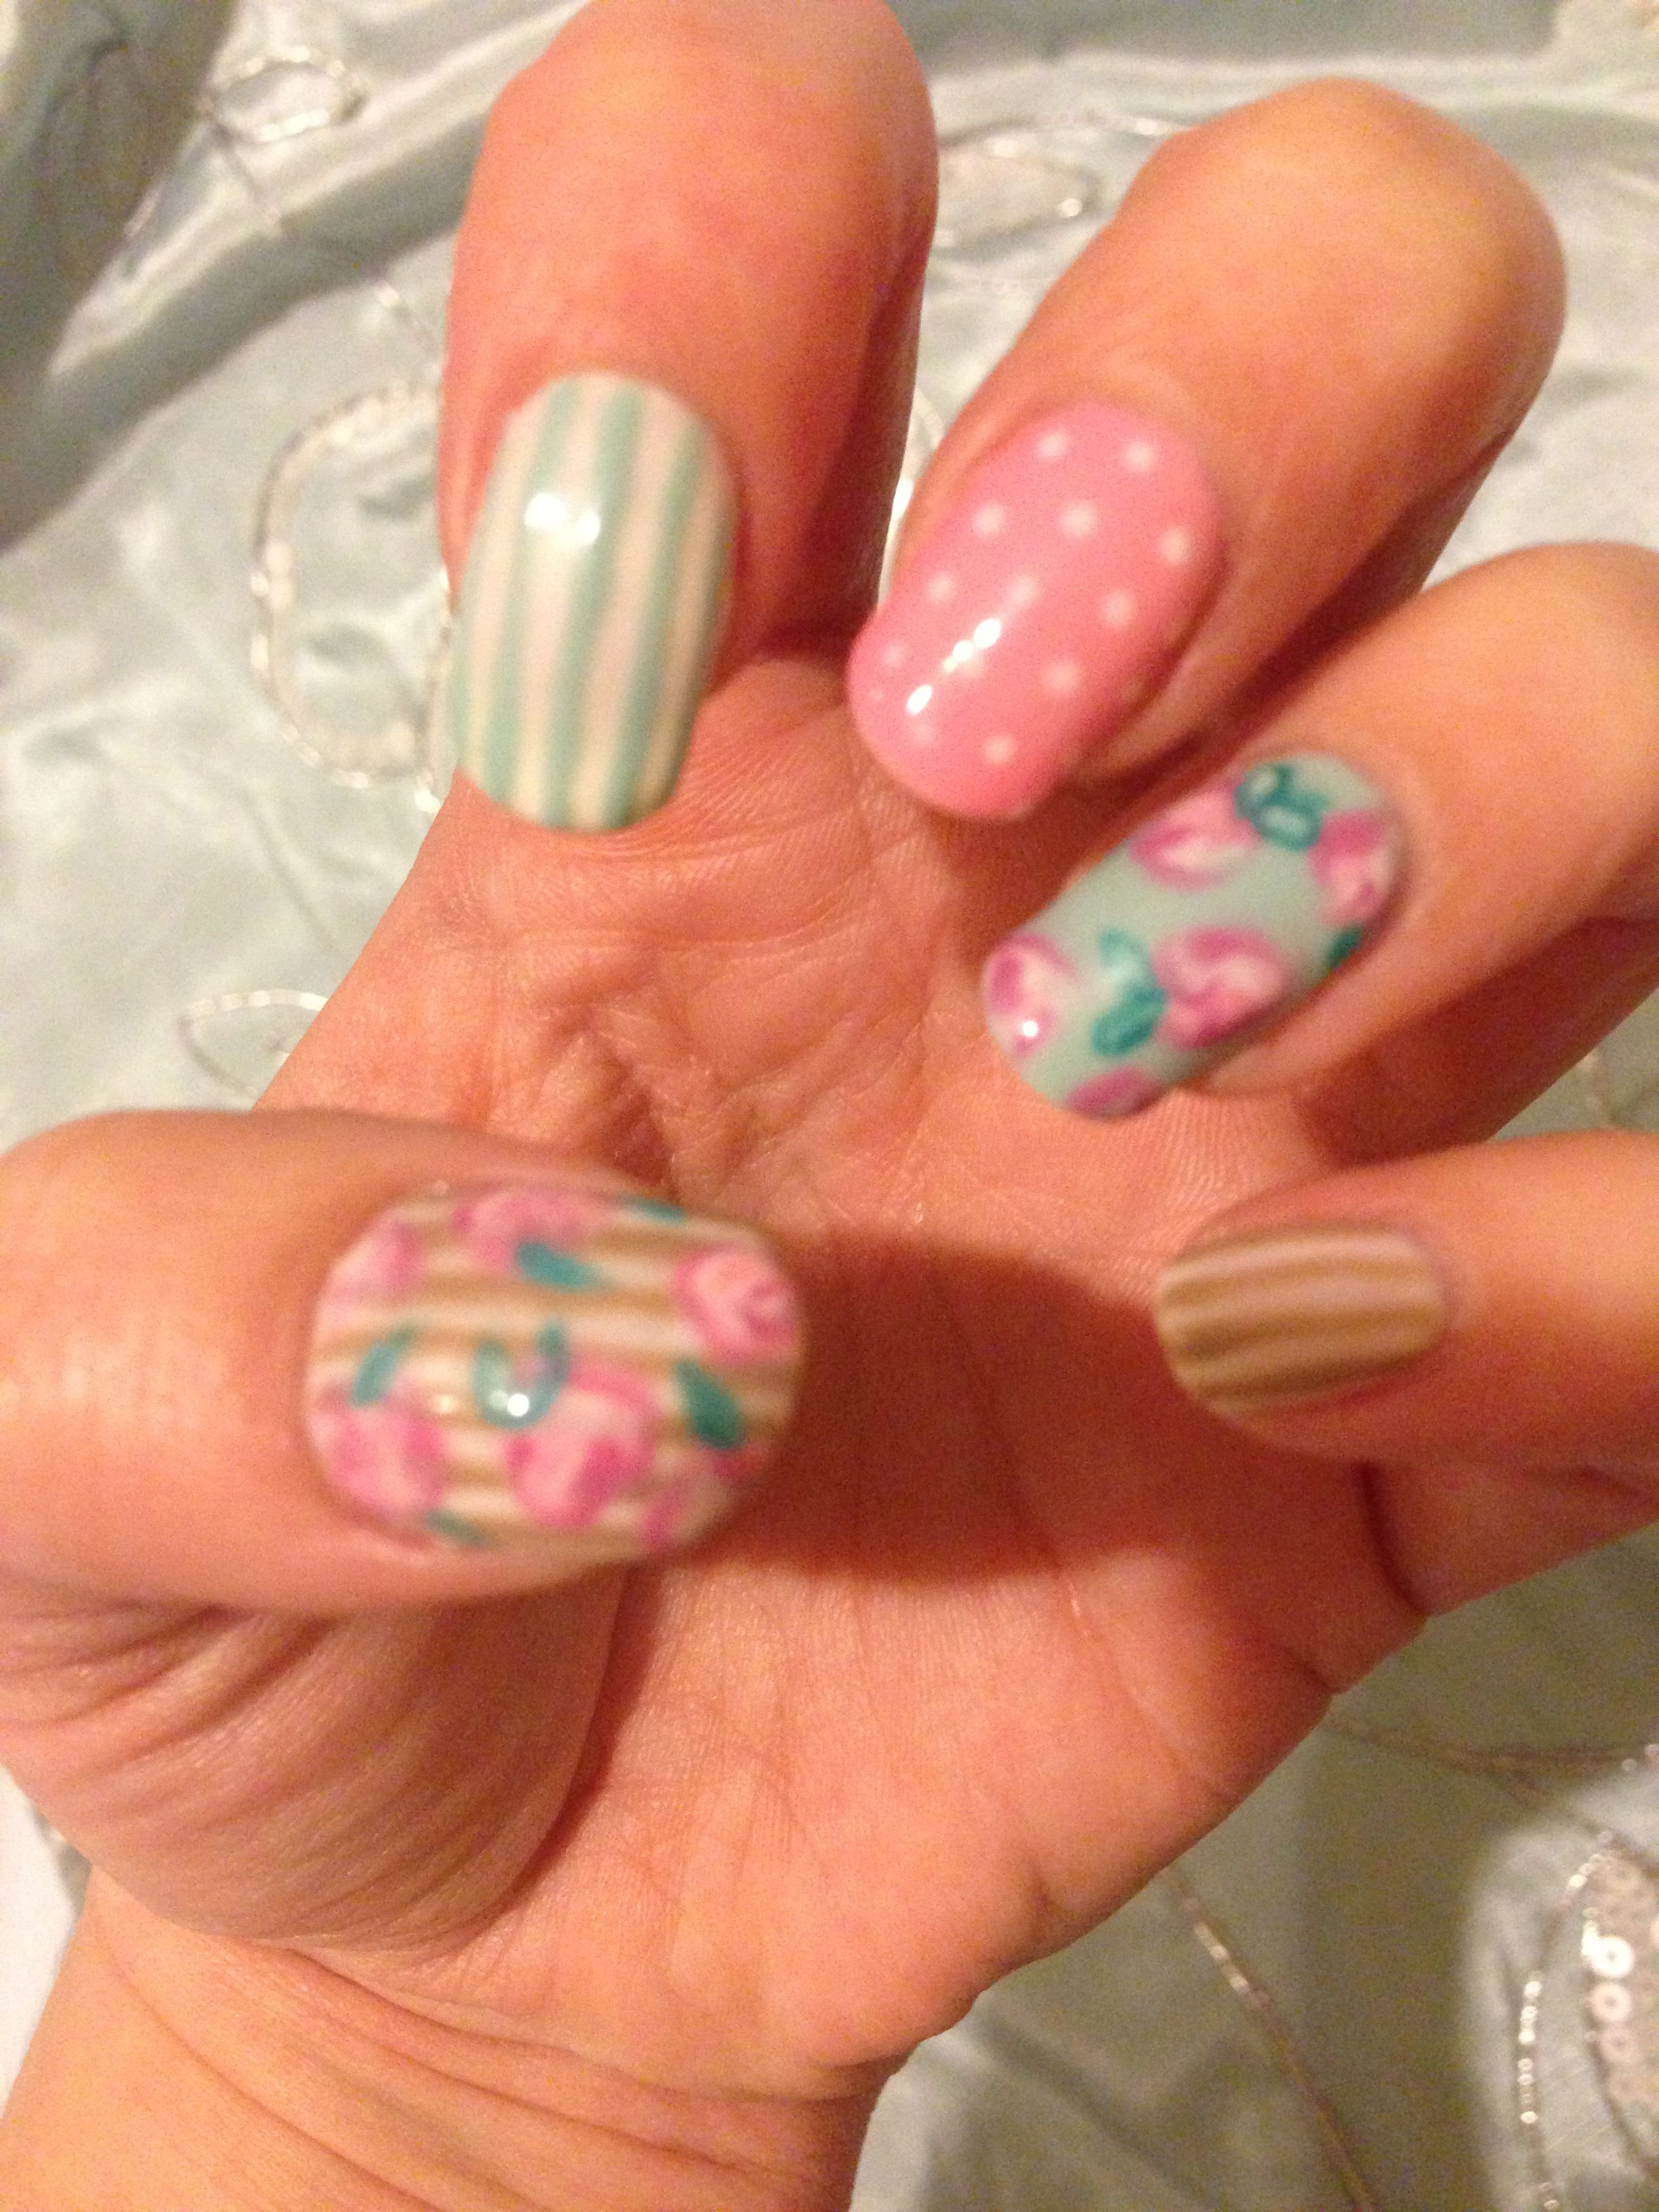 17 Best images about Nail art on Pinterest | Toe nails, Nail nail ...